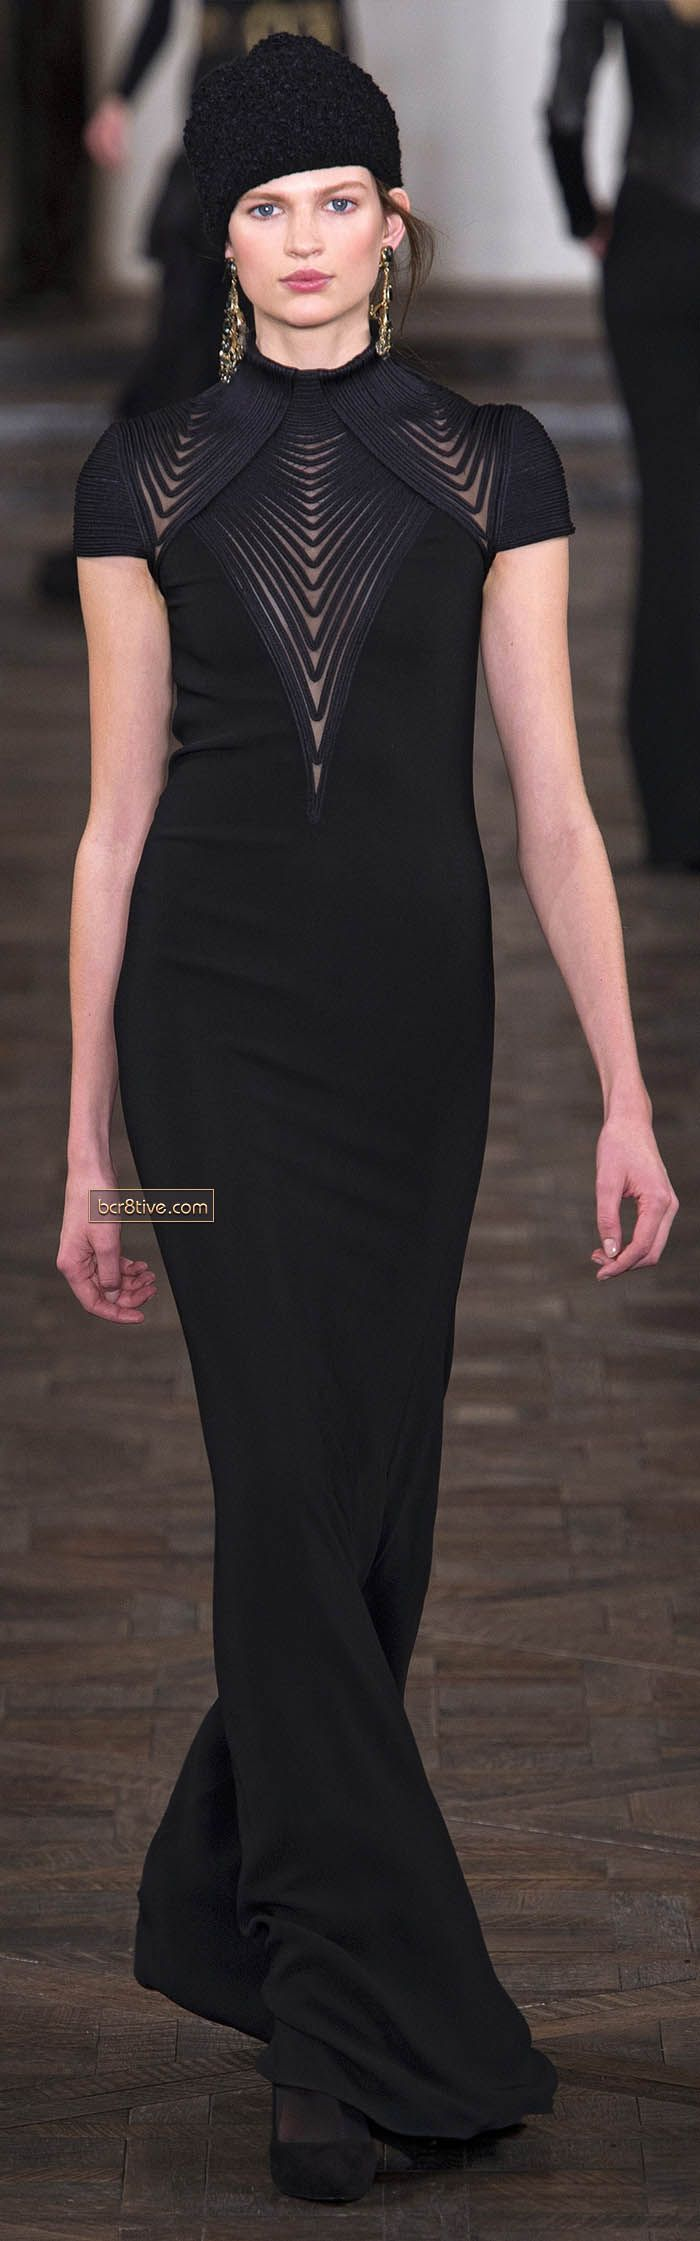 Ralph Lauren Fall Winter 2013 New York Fashion Week